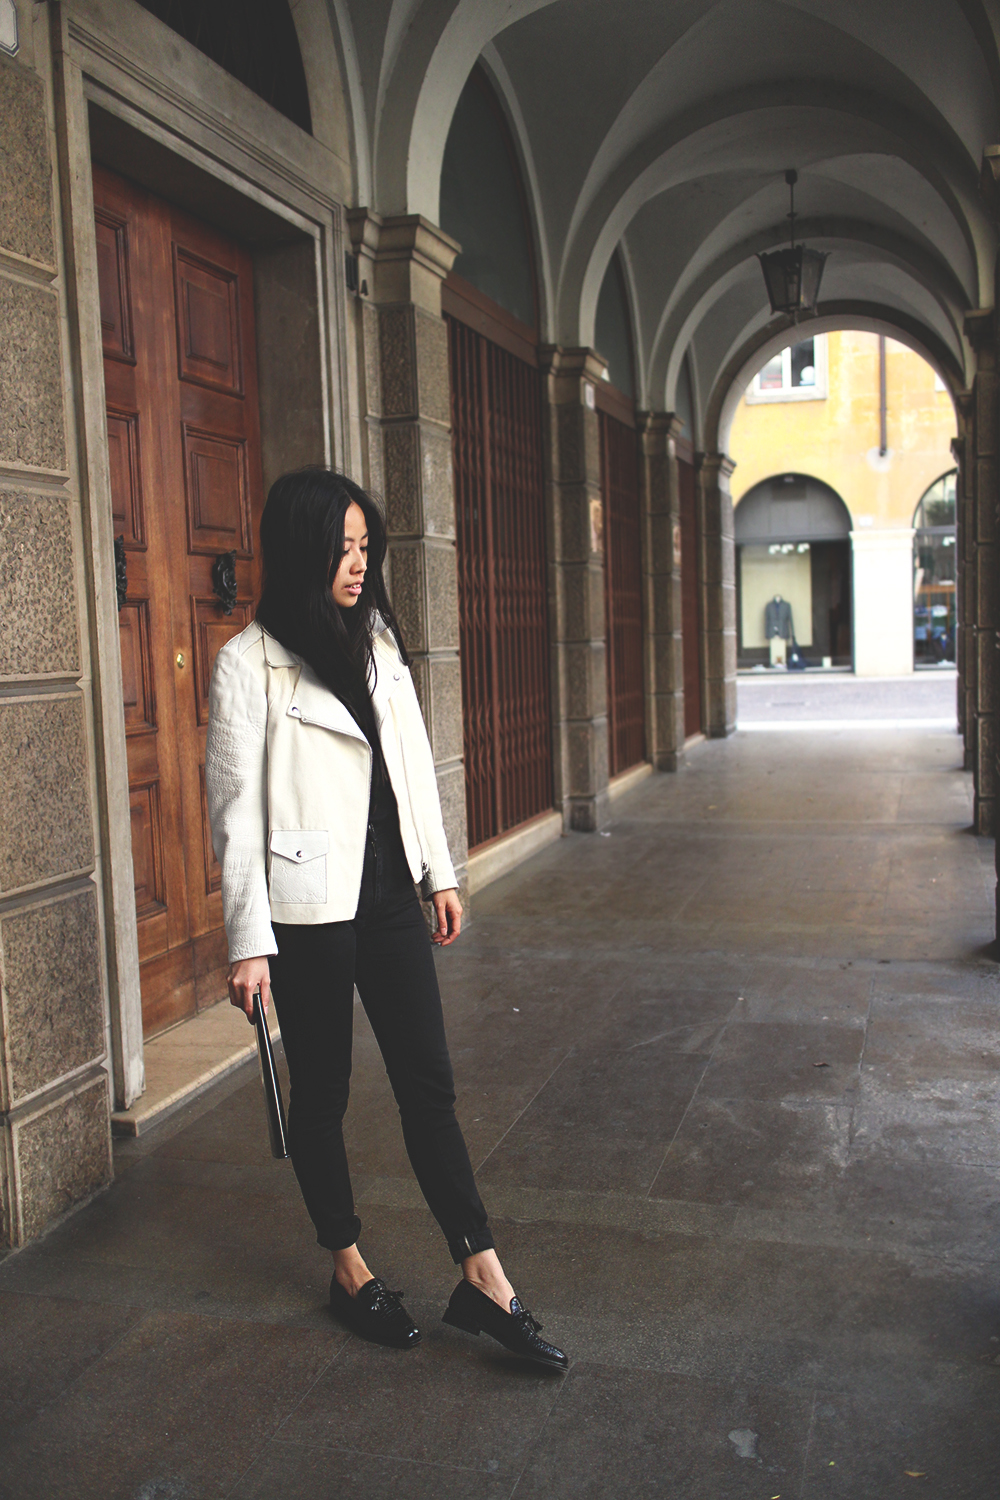 IHEARTALICE.DE – Fashion & Travel Blog: Long healthy and thick hair